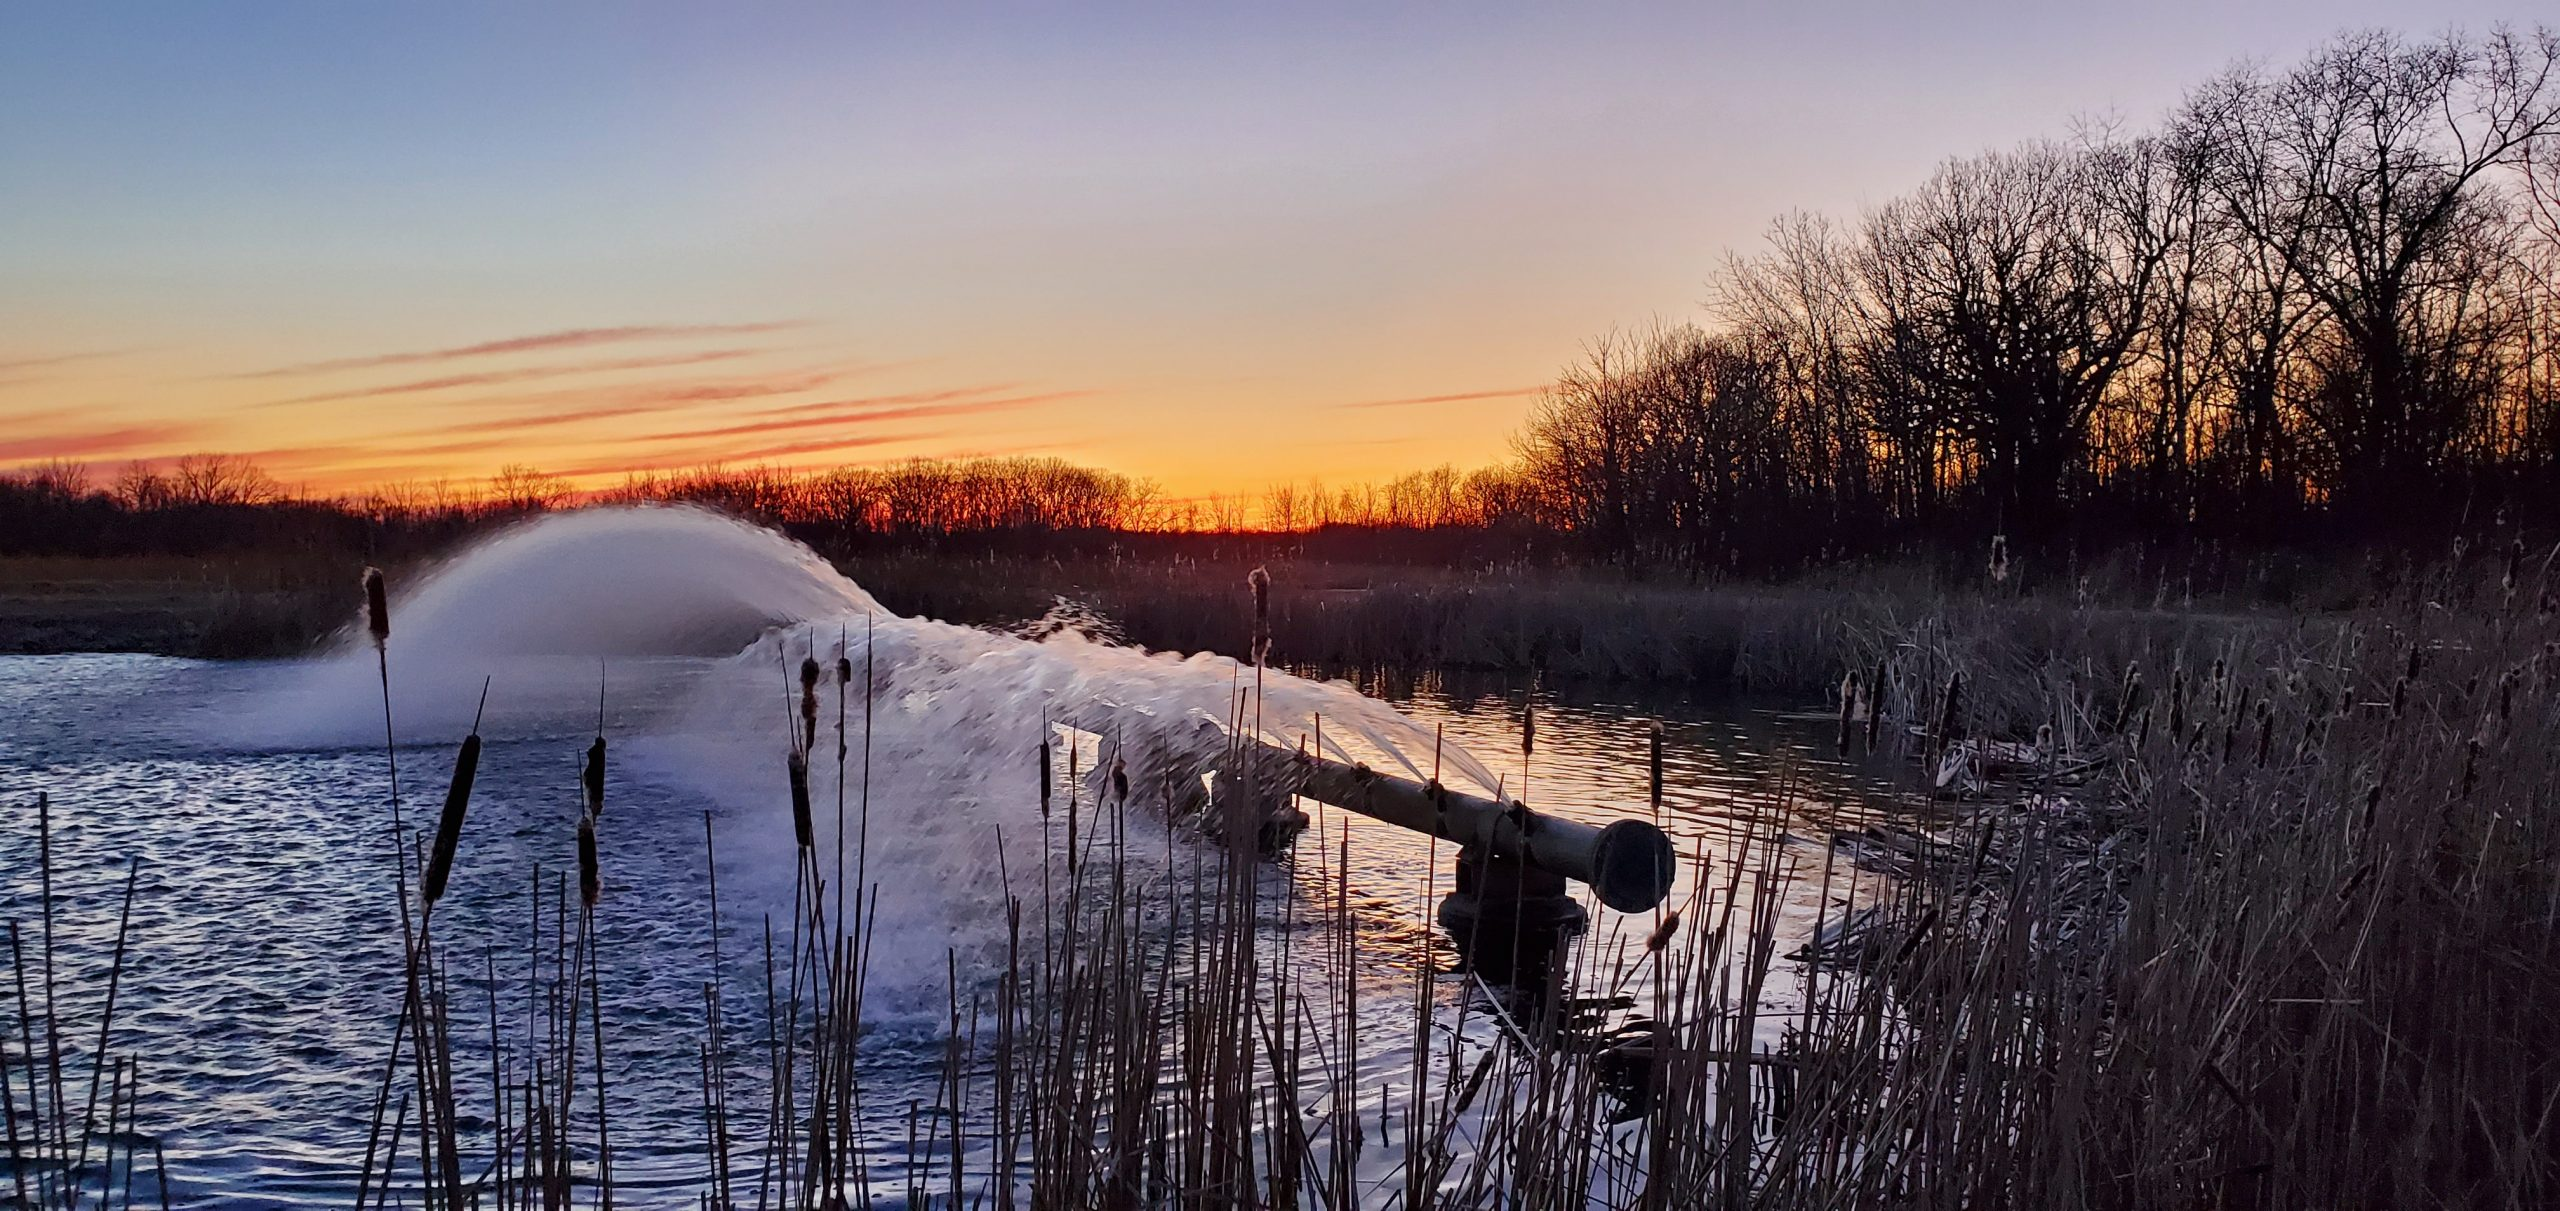 The photographer captured this sunset and the MI60 cooling spouts in Cooling Pond A on March 4. nature, landscape, sunset, water, pond, sky, winter Photo: Kelly Sedgwick